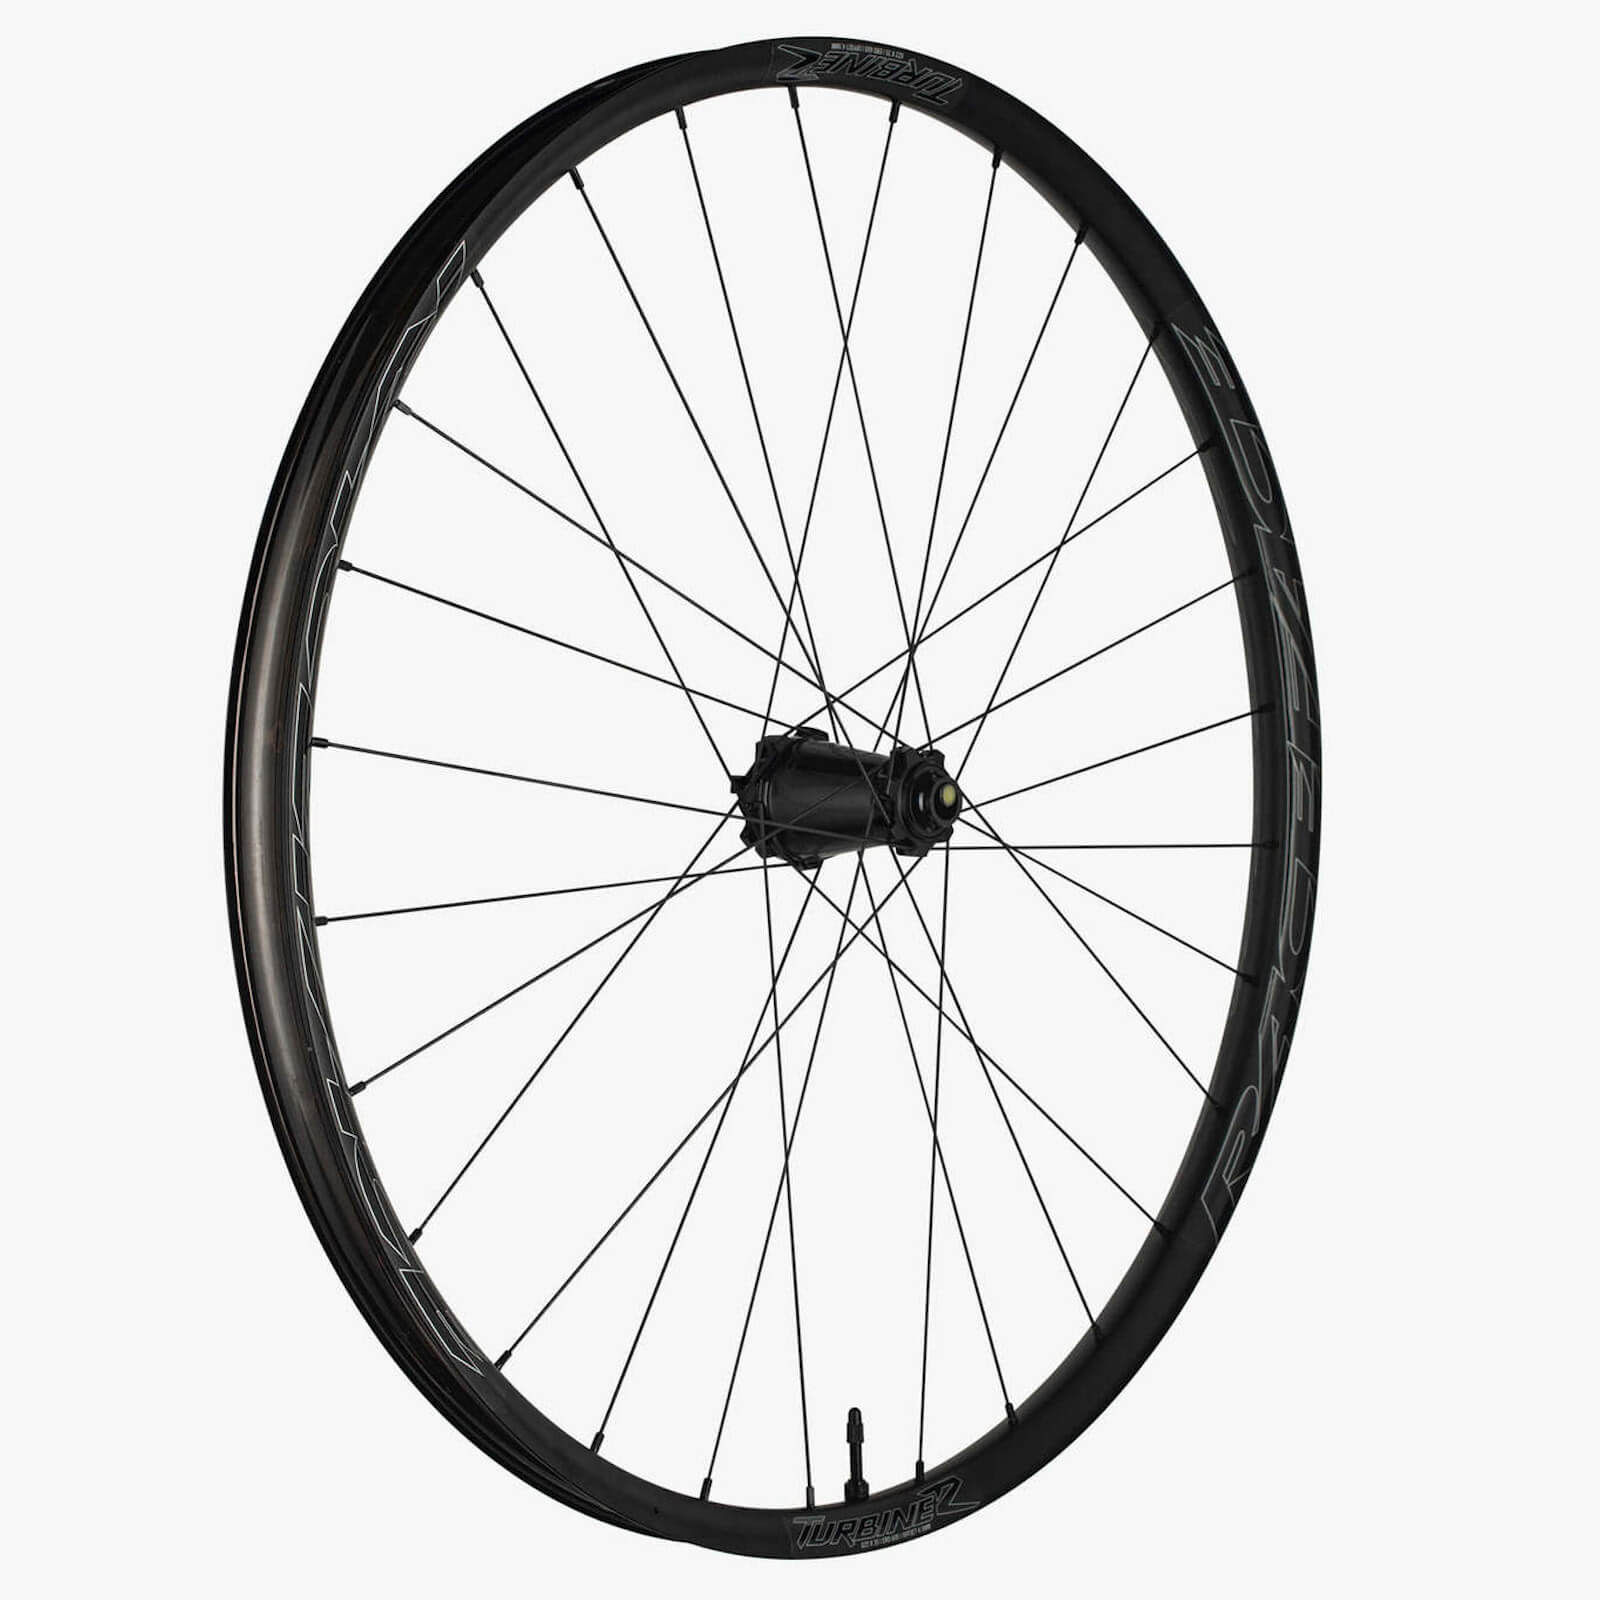 Race Face Turbine R 35mm MTB Alloy Rear Wheel - Black - 29 Inch/12 x 157mm - XD Driver